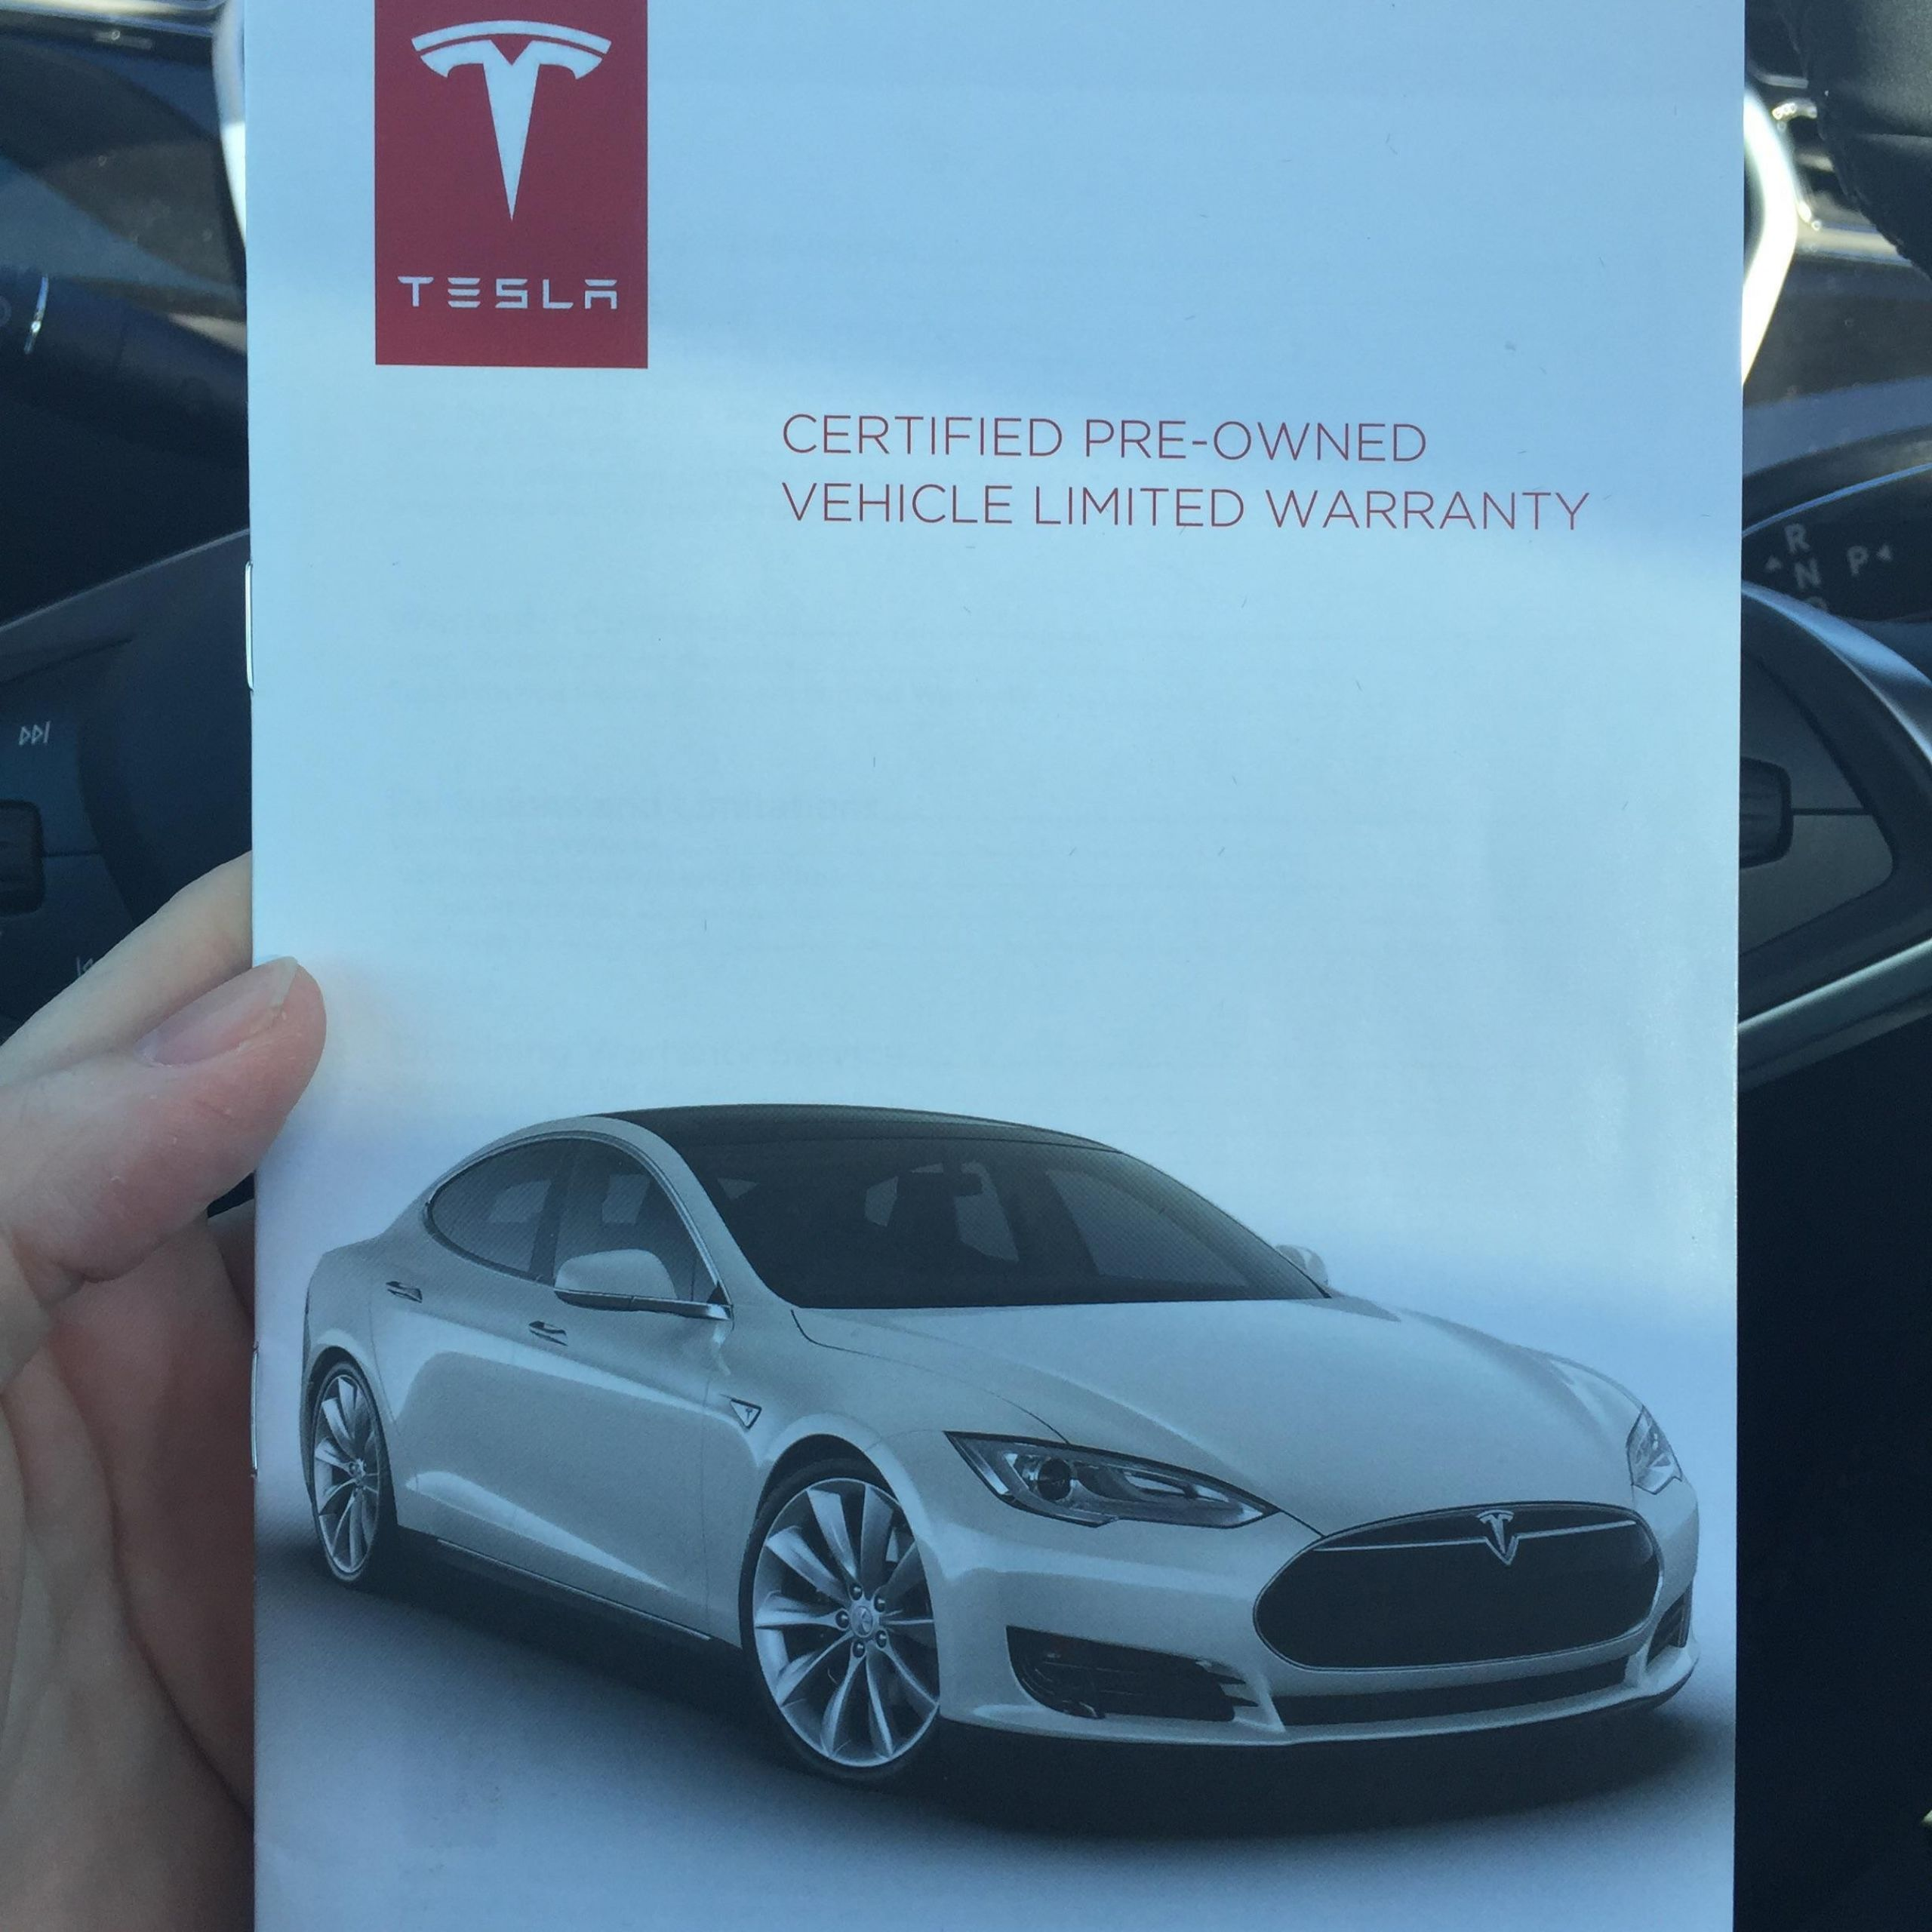 Tesla Cpo New Tesla Model S now Has A Certified Pre Owned Program the